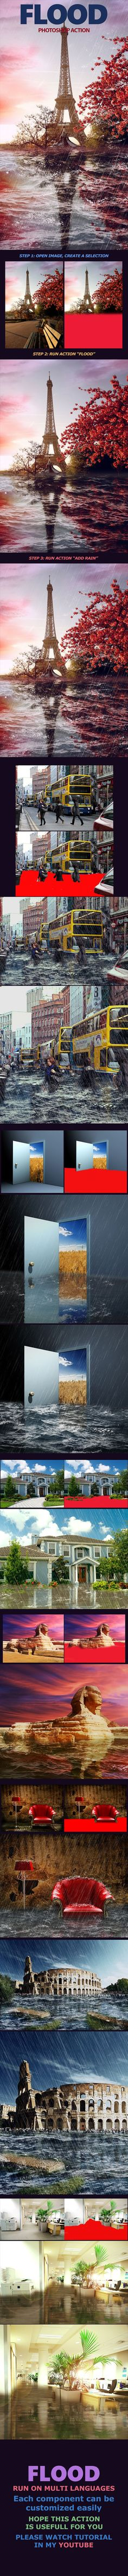 Flood Photoshop Action This action will add Flood to anywhere on your photo, just create your selection on the new layer and run the action. Download thic action at: https://graphicriver.net/item/flood/17205260?ref=KlitVogli